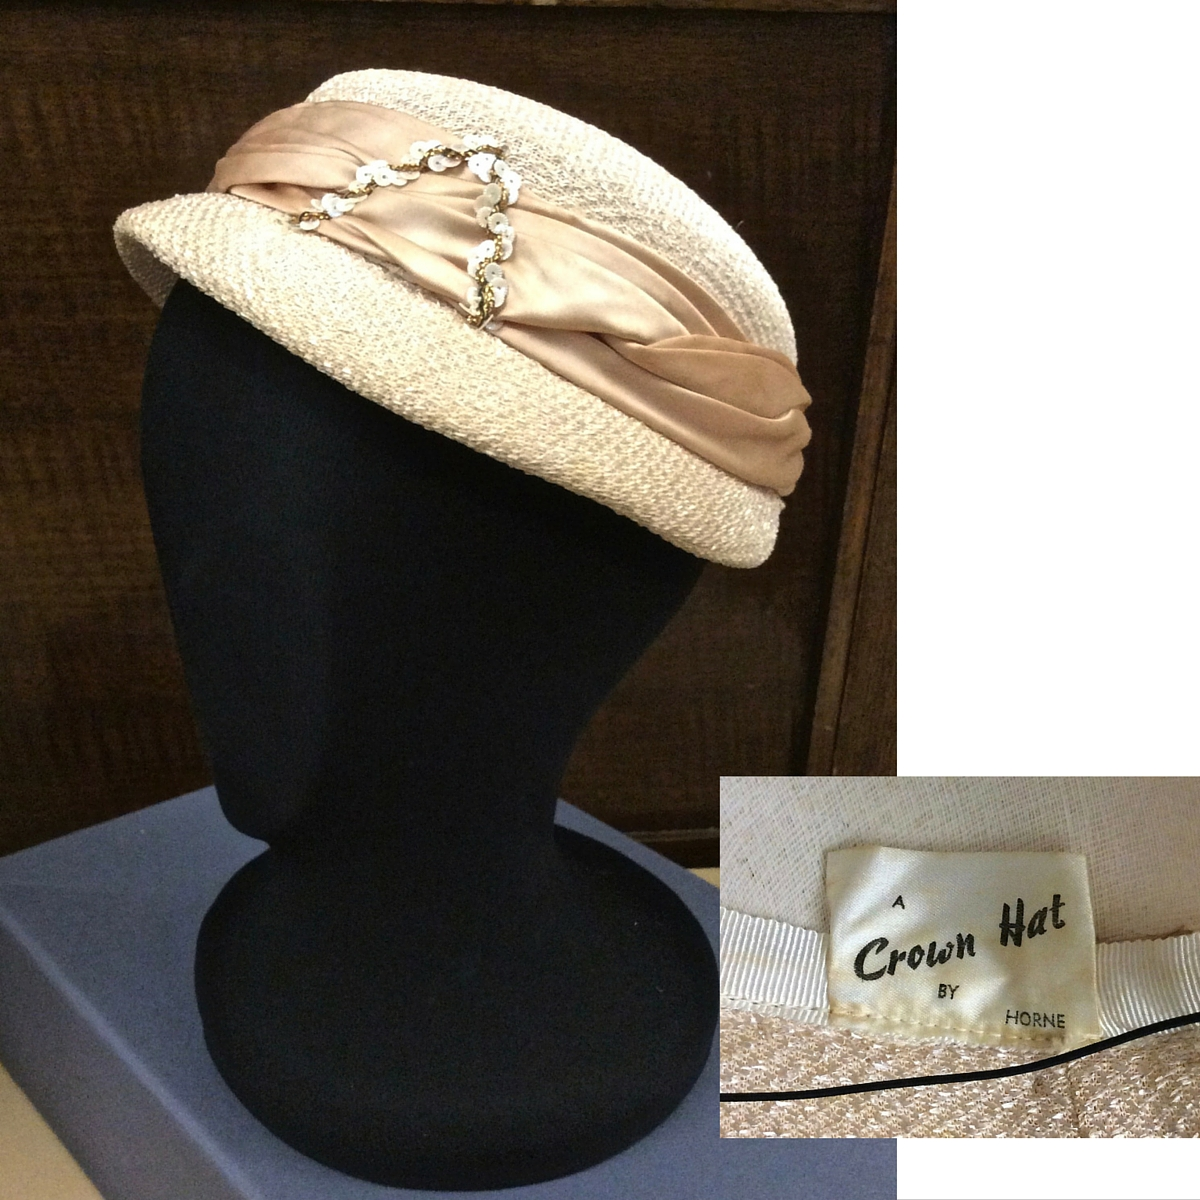 A Crown Hat by Horne